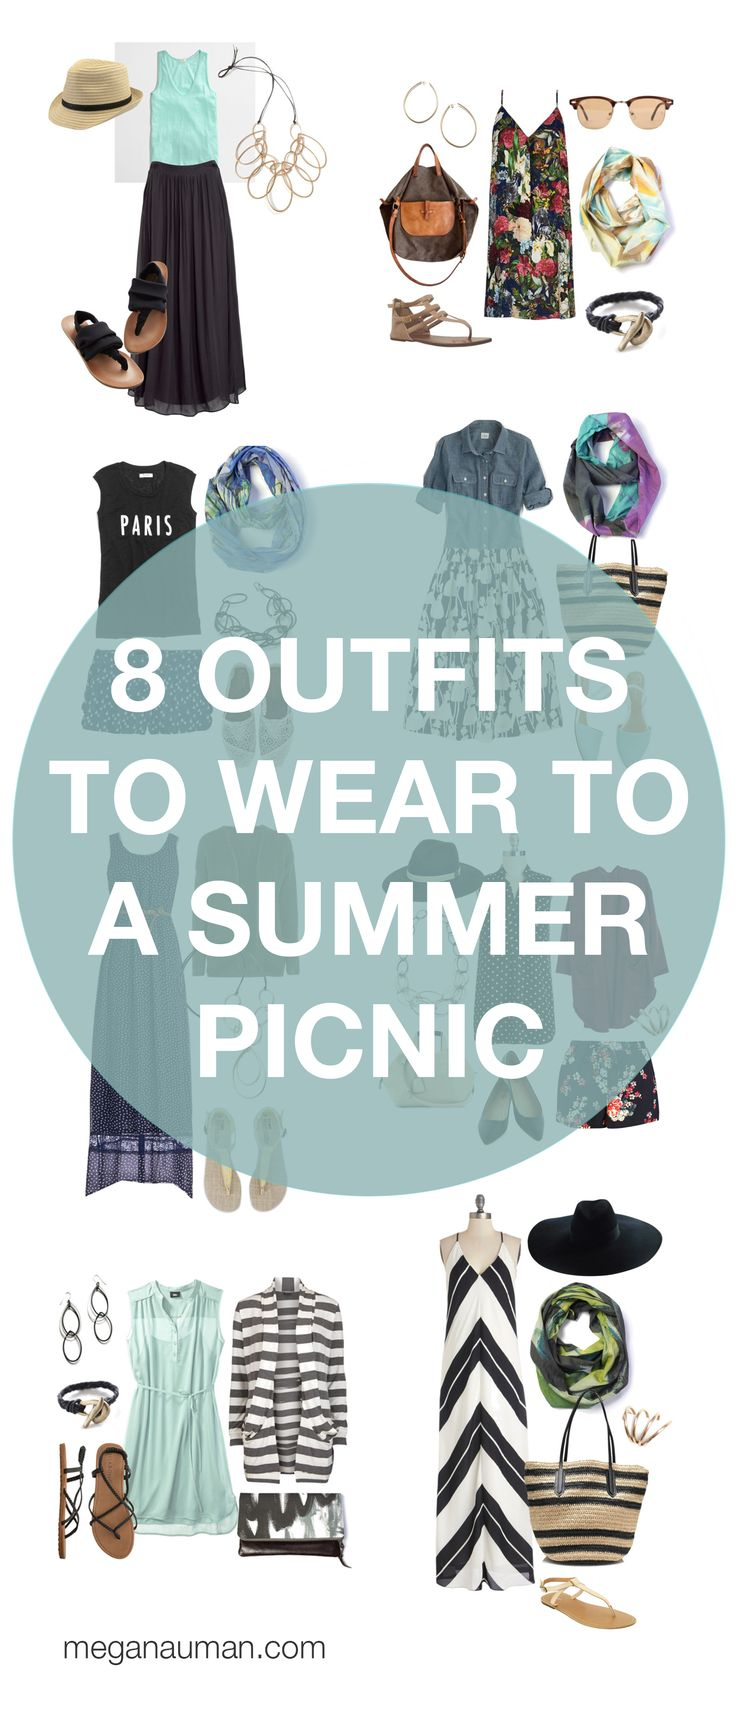 summer style: 8 outfits to wear to a picnic or barbecue // click through for outfit details